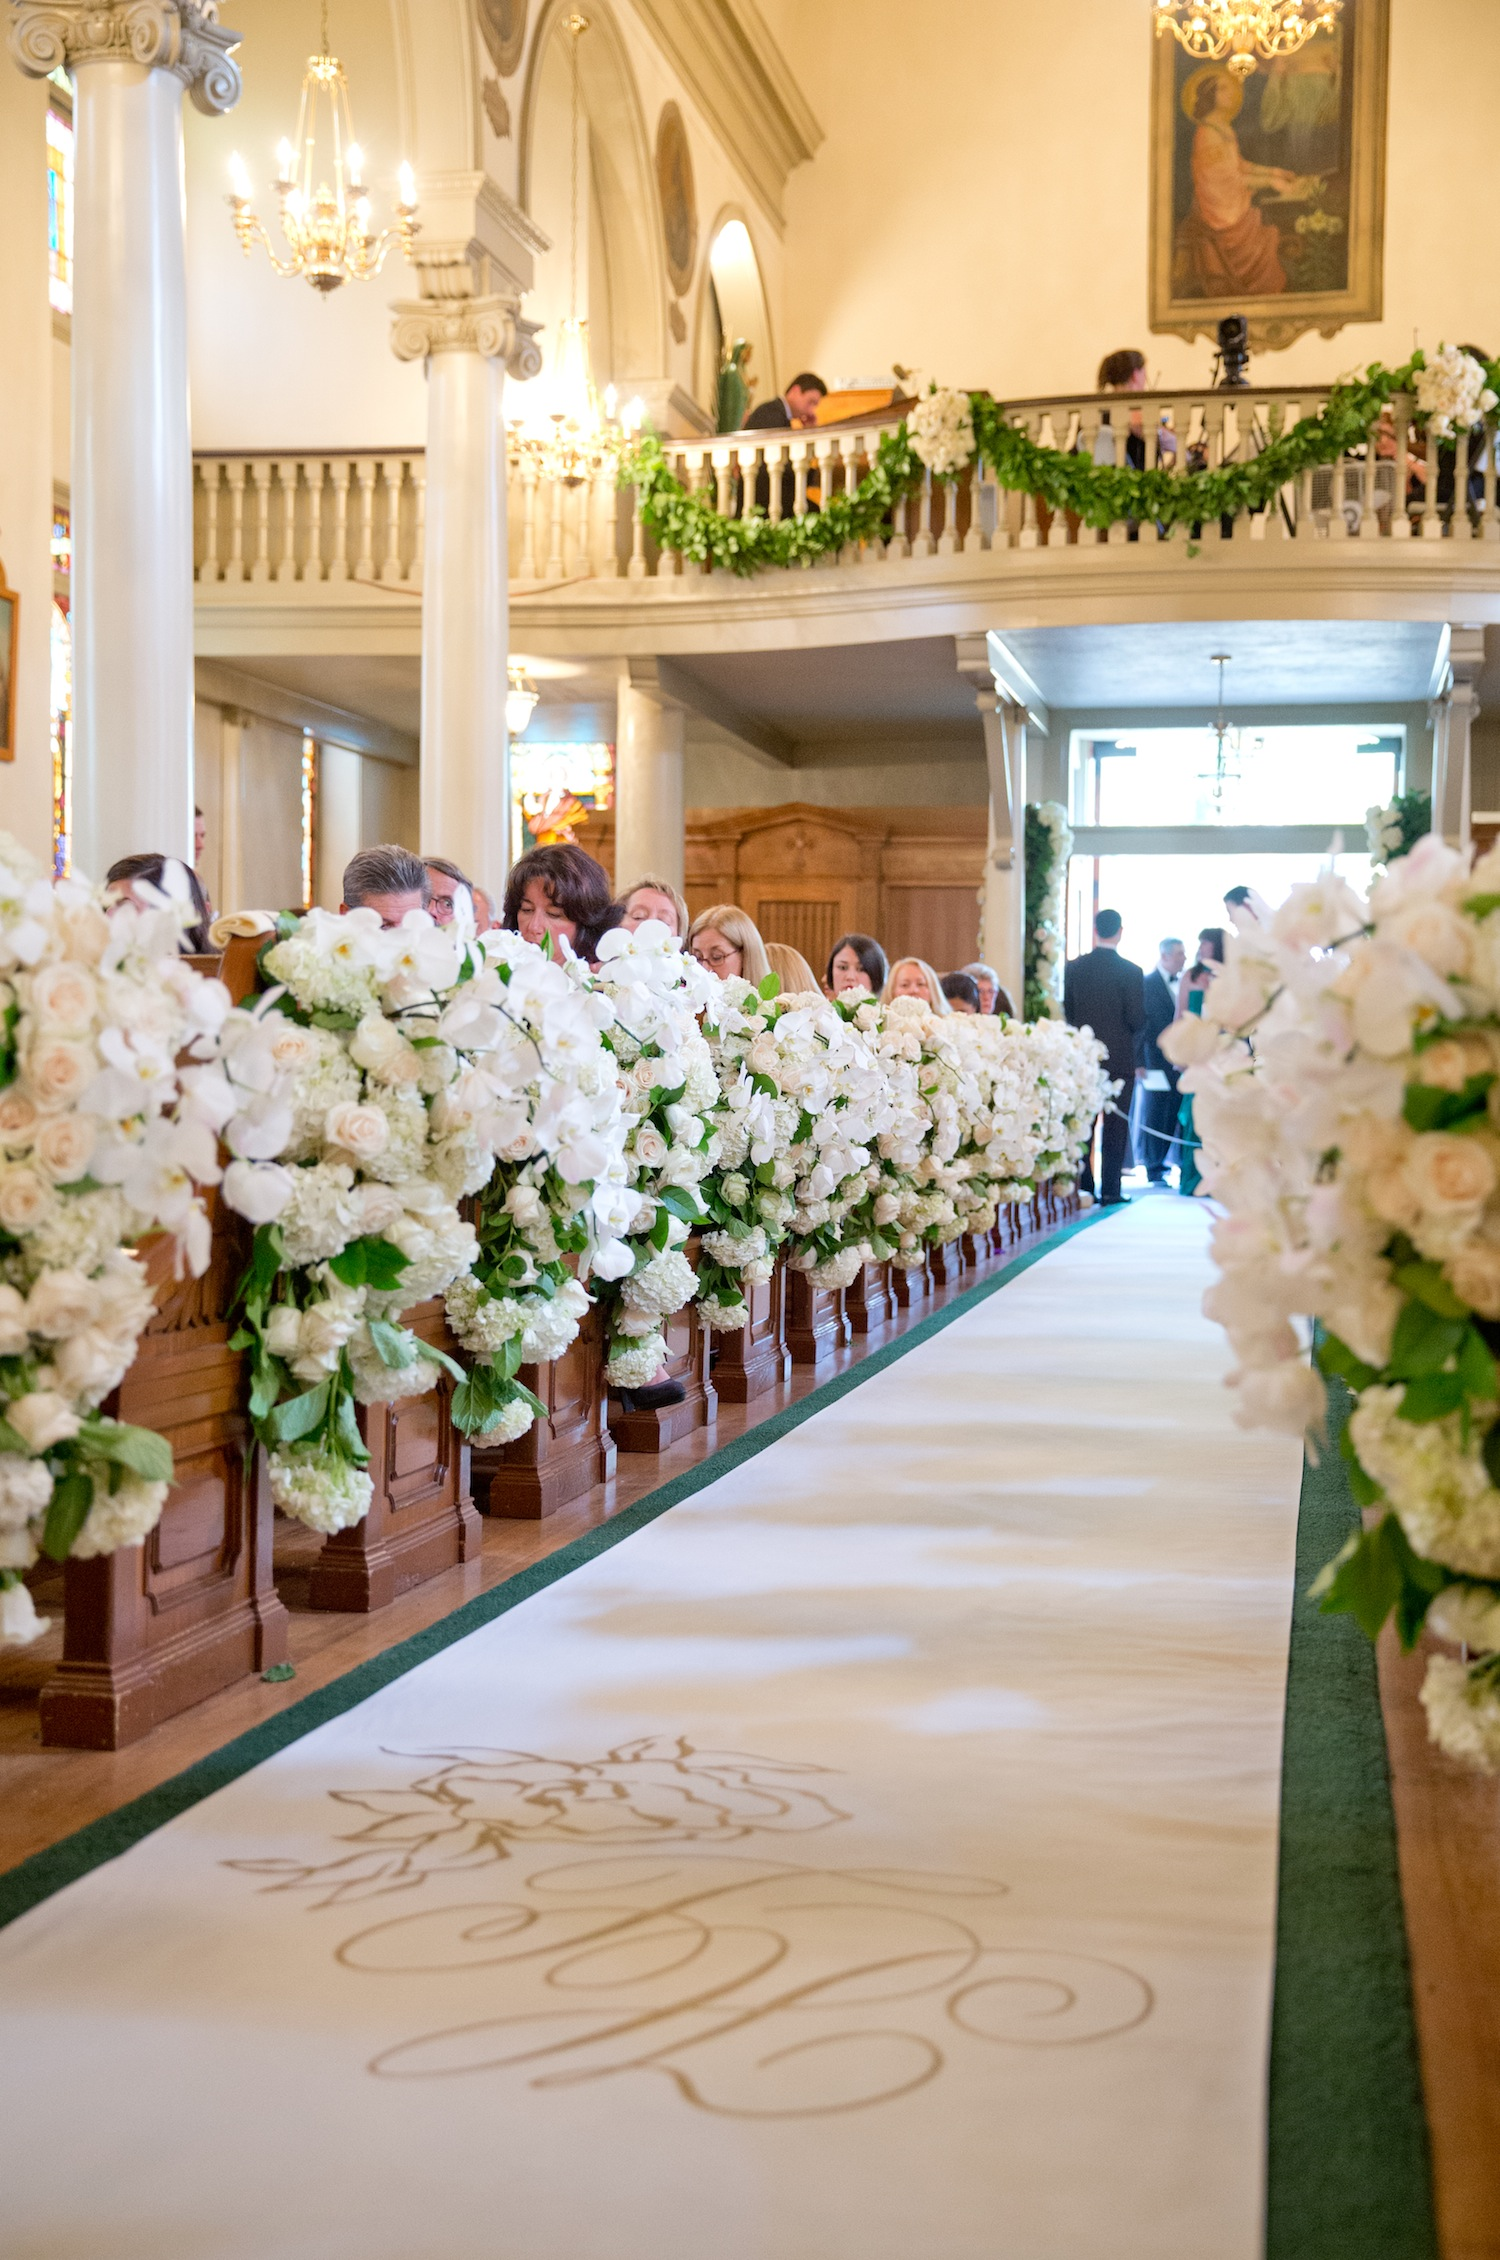 Wedding ceremony ideas 13 dcor ideas for a church wedding inside custom aisle runner and flowers at church wedding junglespirit Images